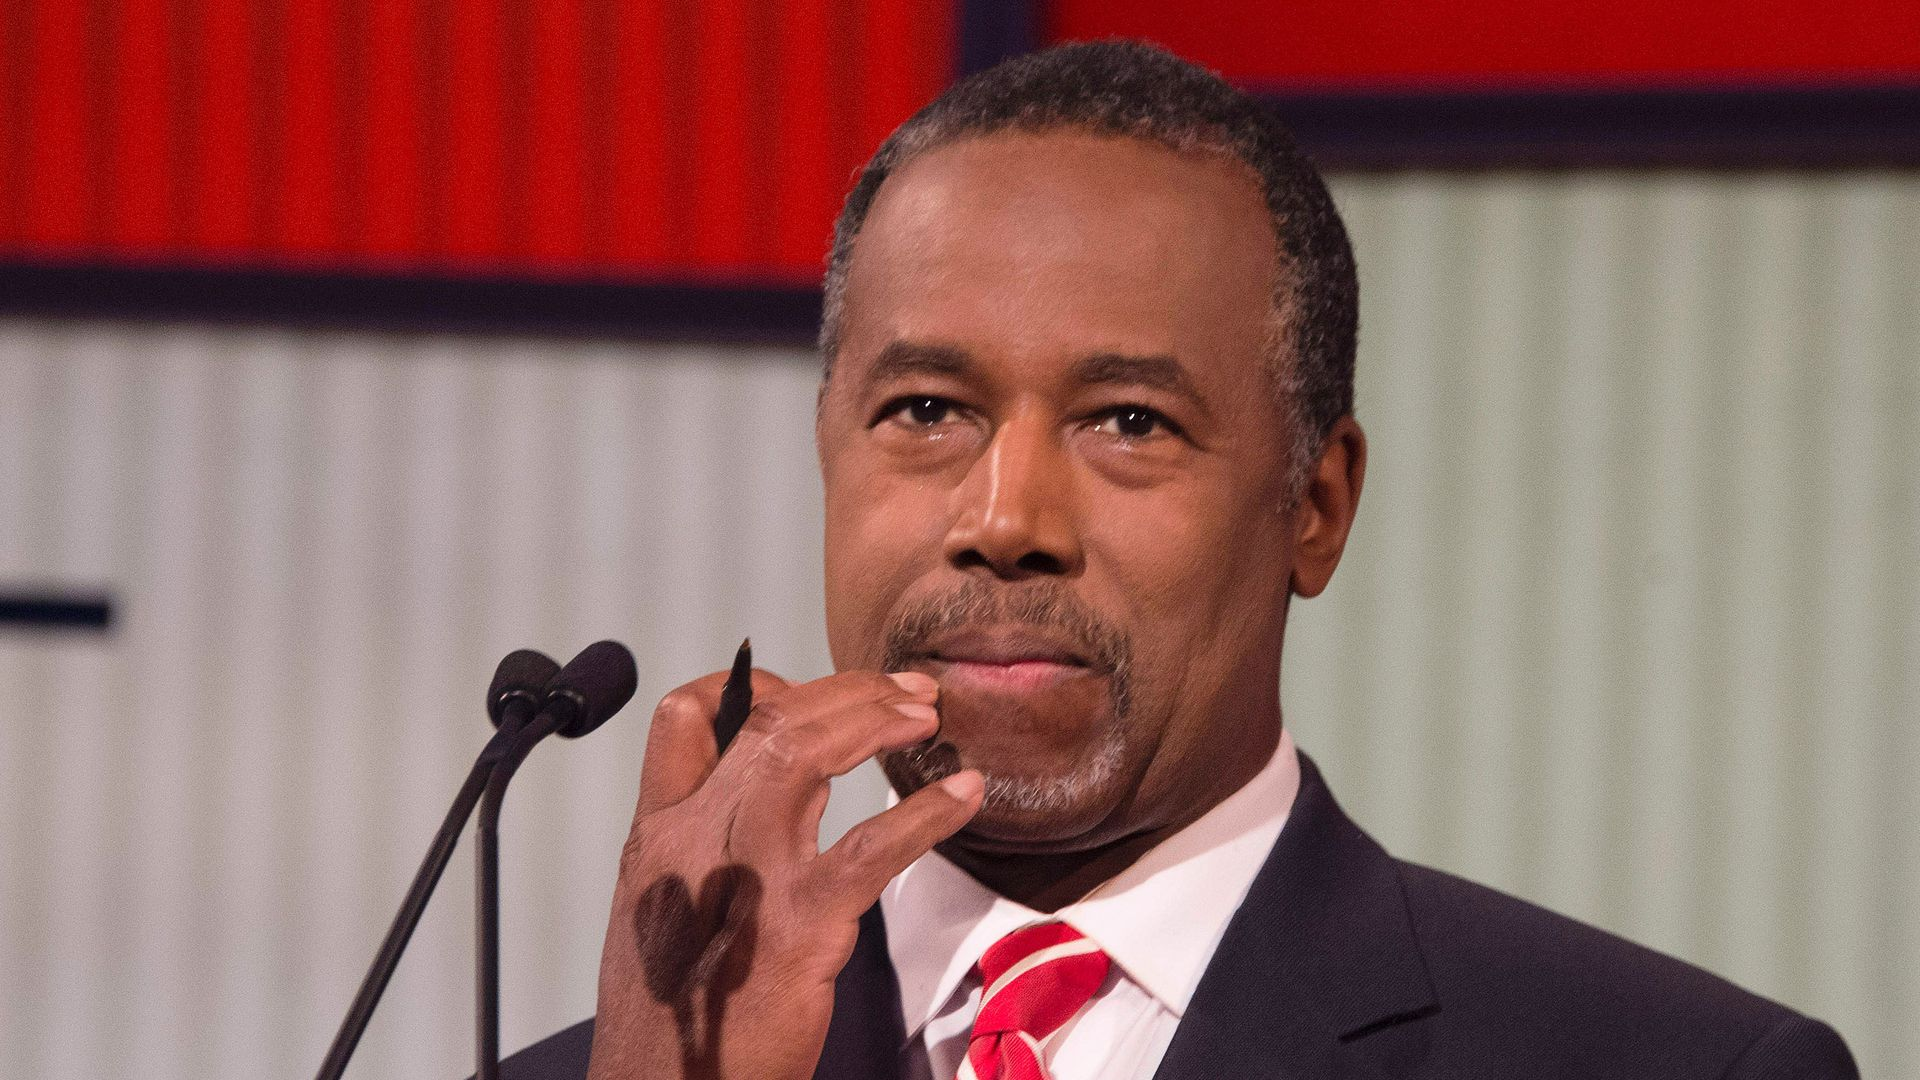 Carson has $31K dining set in his office, paid for by taxpayers